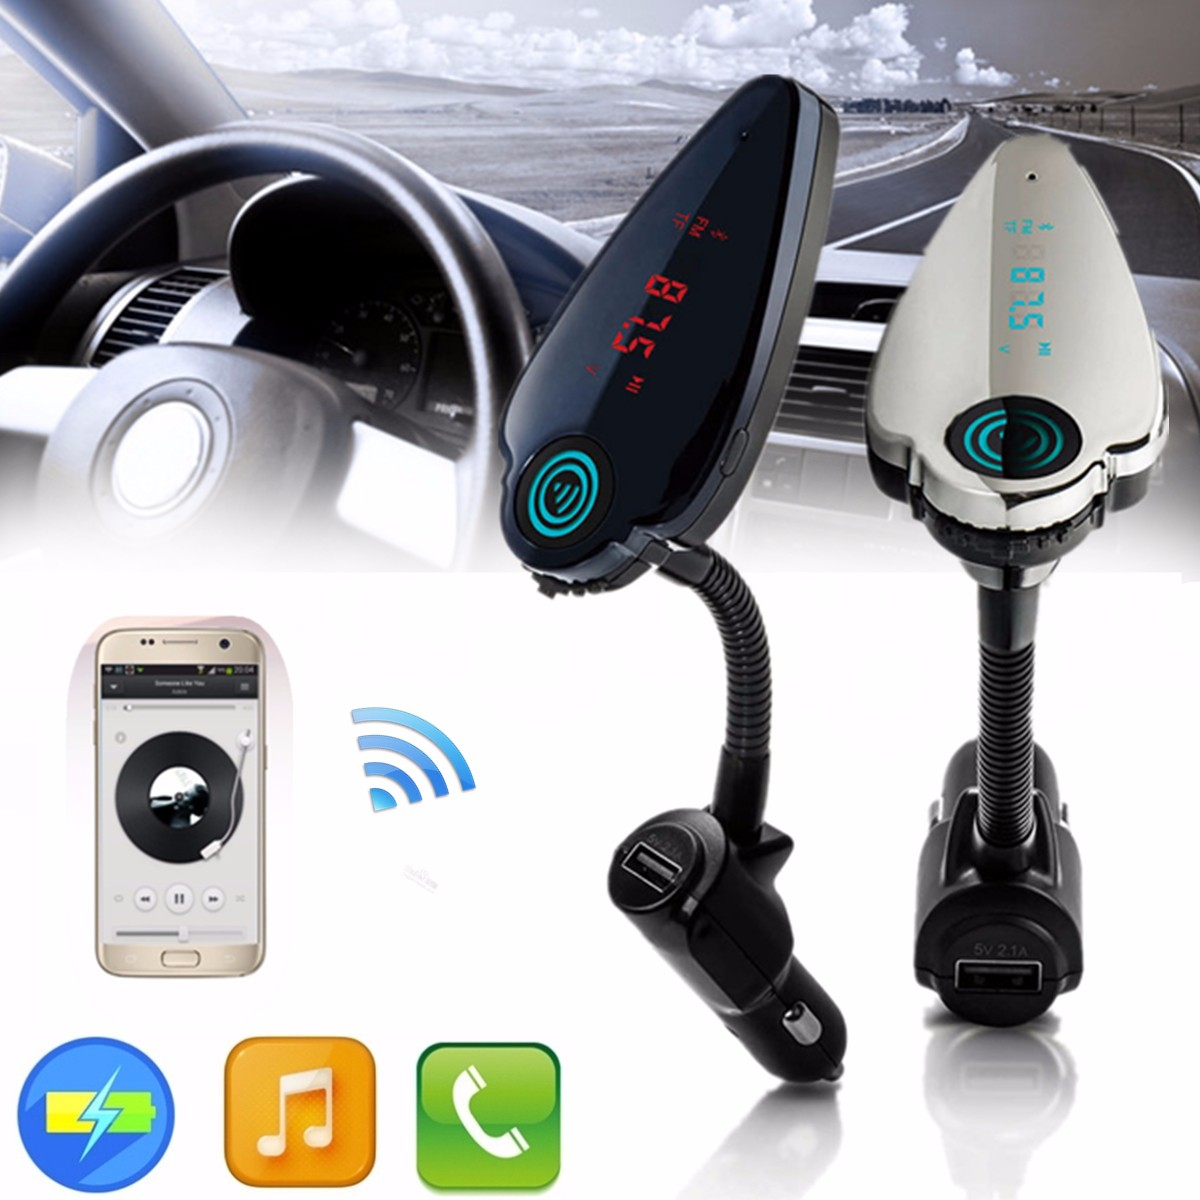 T6 LCD Display Car Charger bluetooth Hands Free FM Transmitter Built-in Microphone MP3 Player